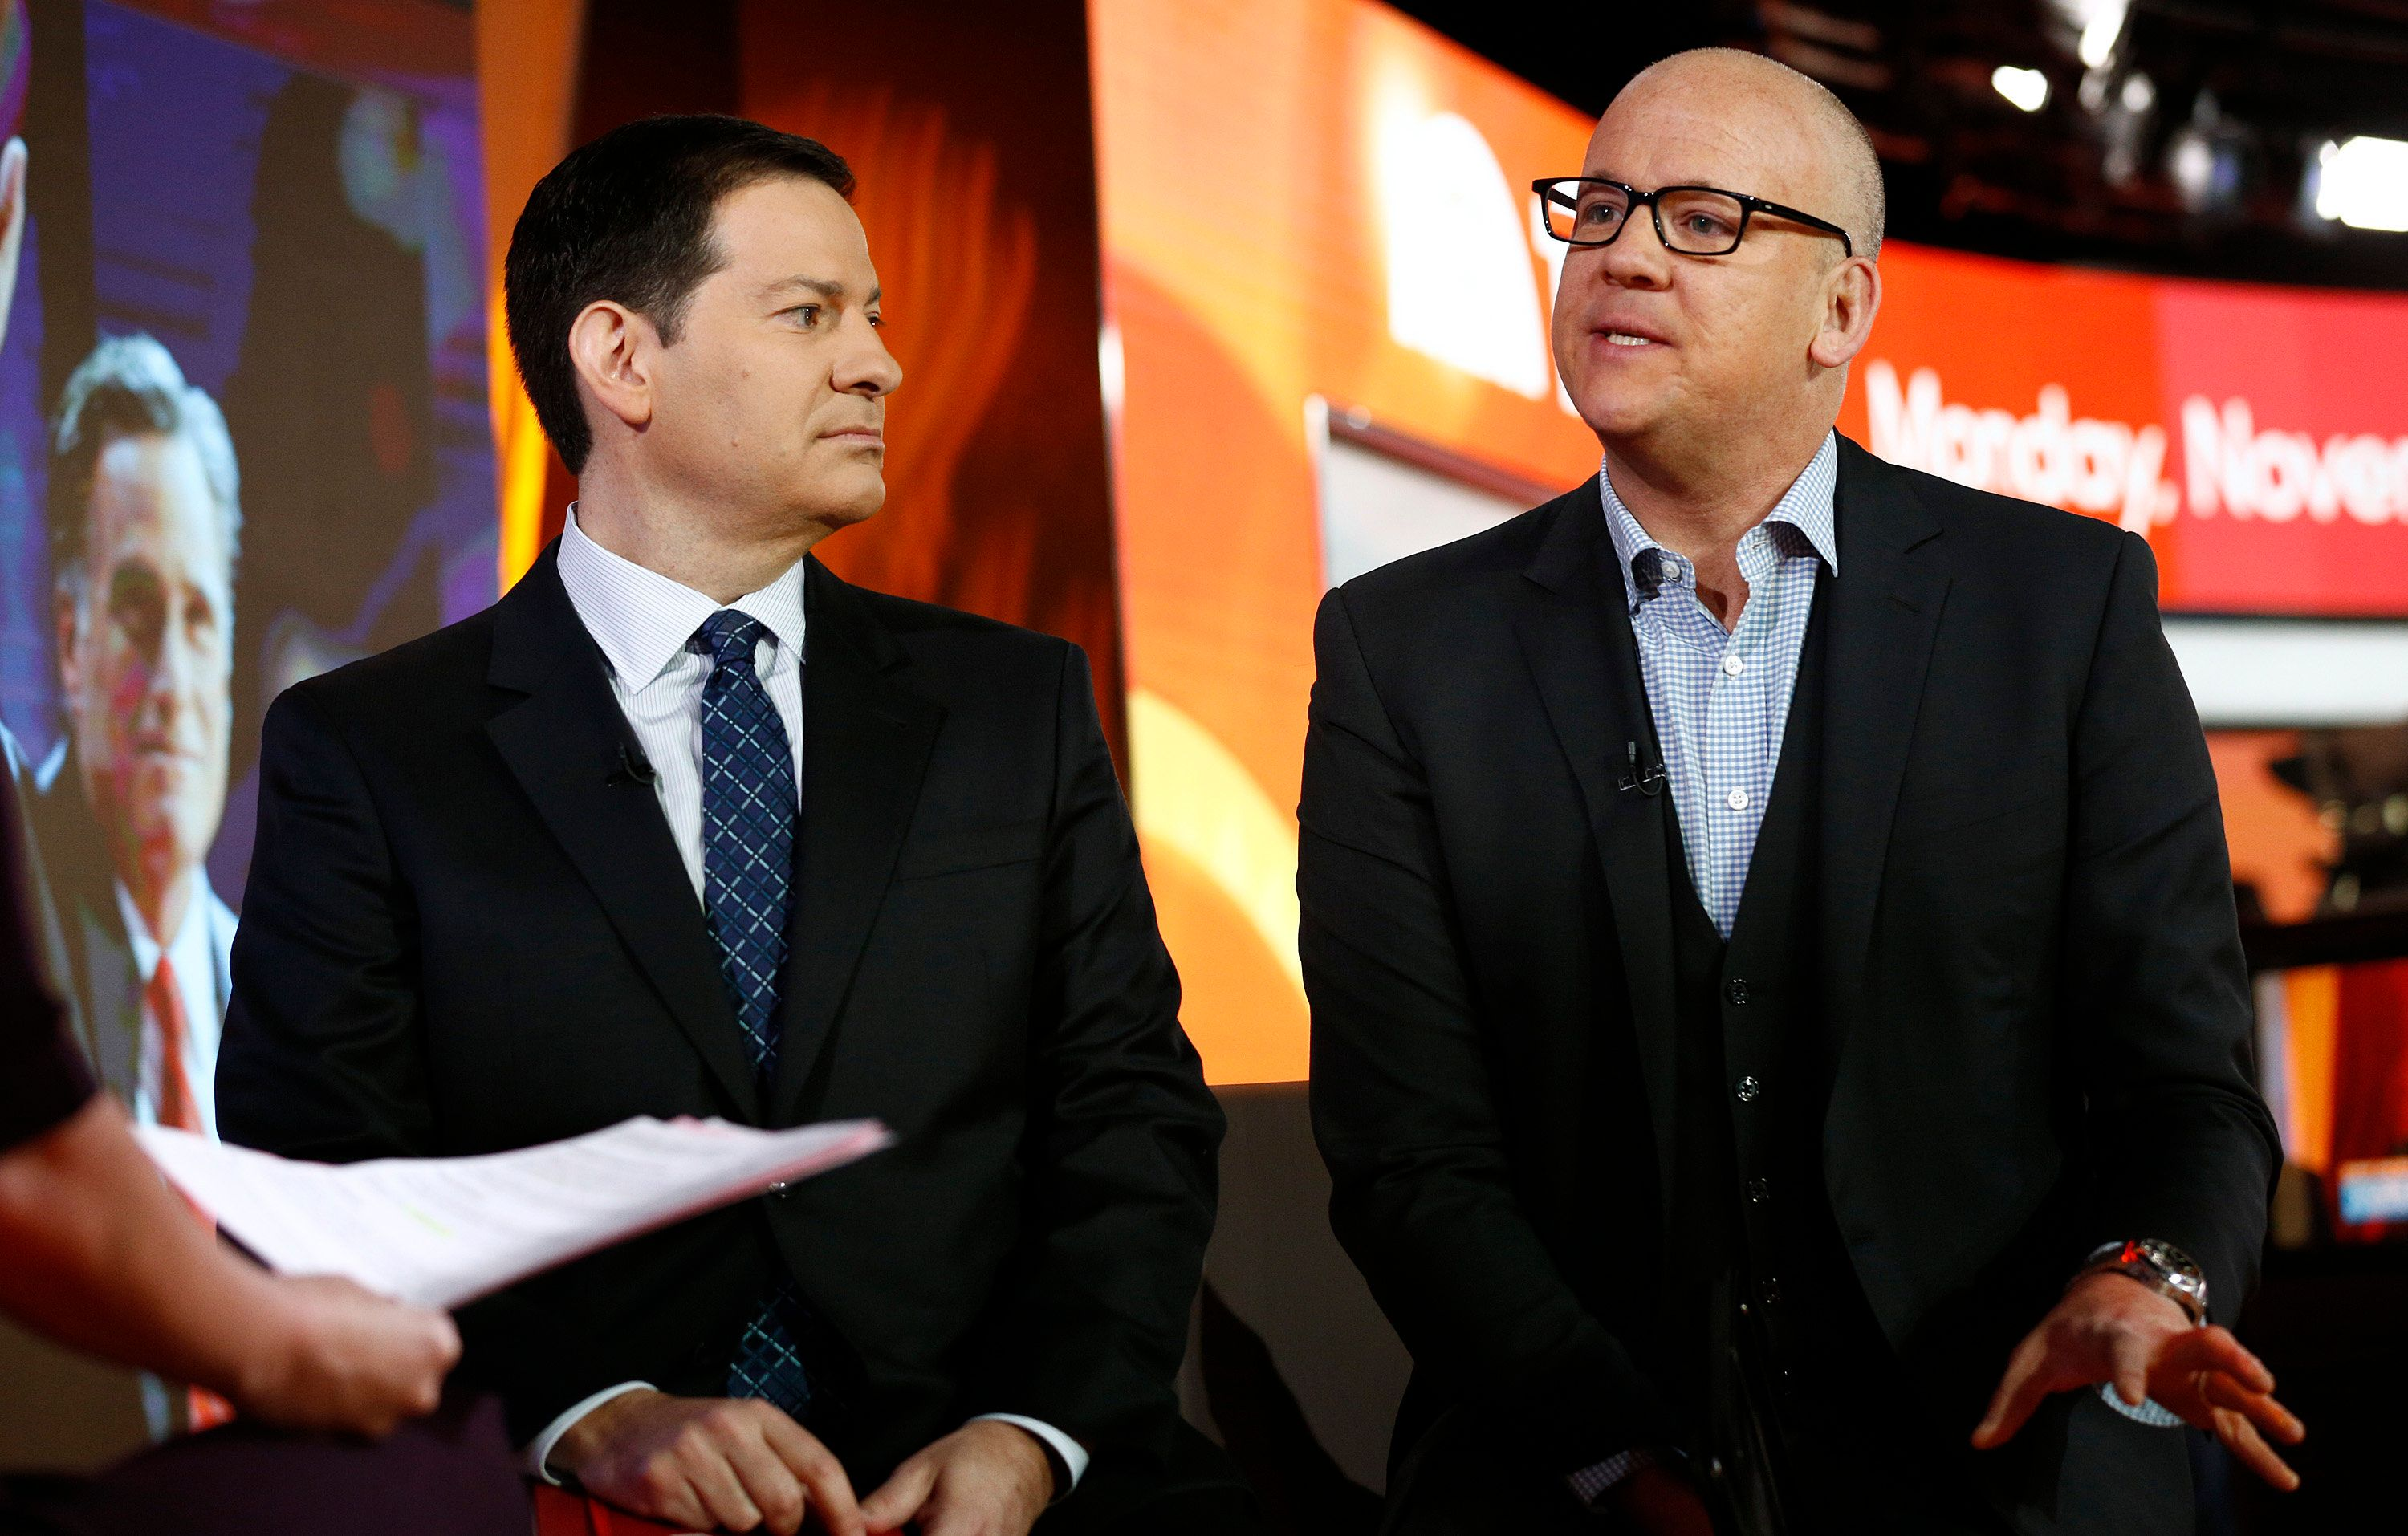 TODAY -- Pictured: (l-r) Political journalists Mark Halperin and John Heilemann appear on NBC News' 'Today' show on November 4, 2013 -- (Photo by: Peter Kramer/NBC/NBC NewsWire via Getty Images)